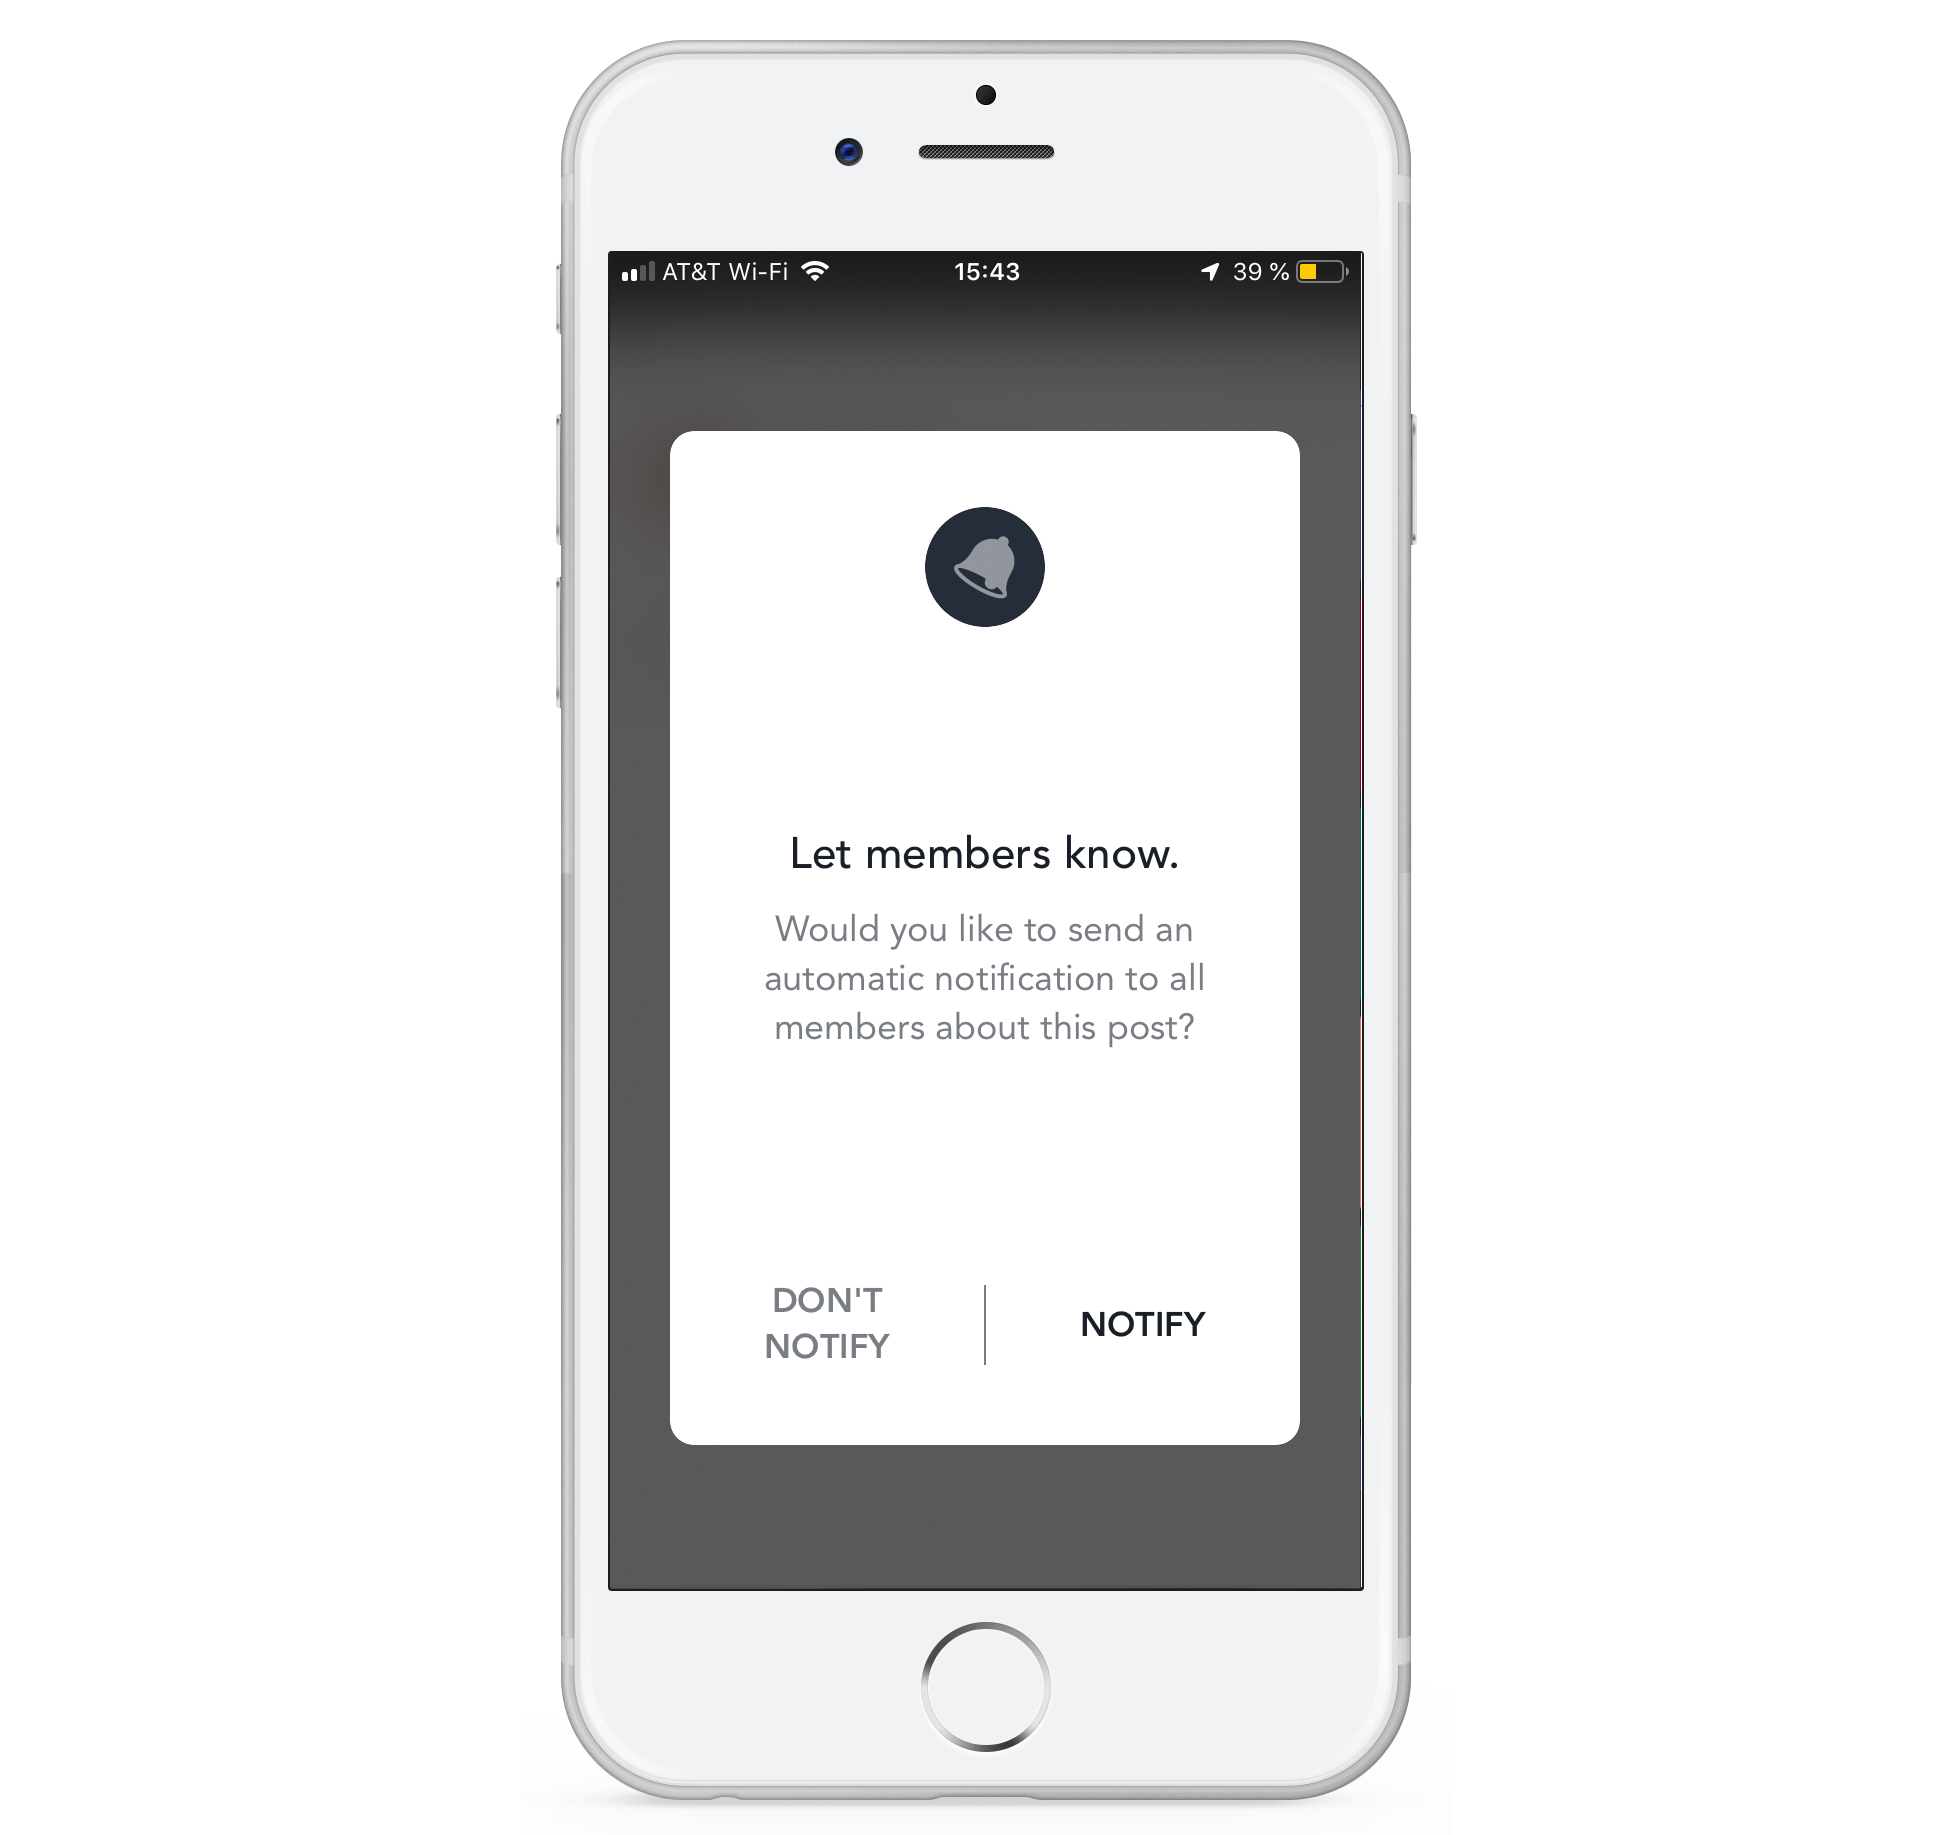 notification.jpg